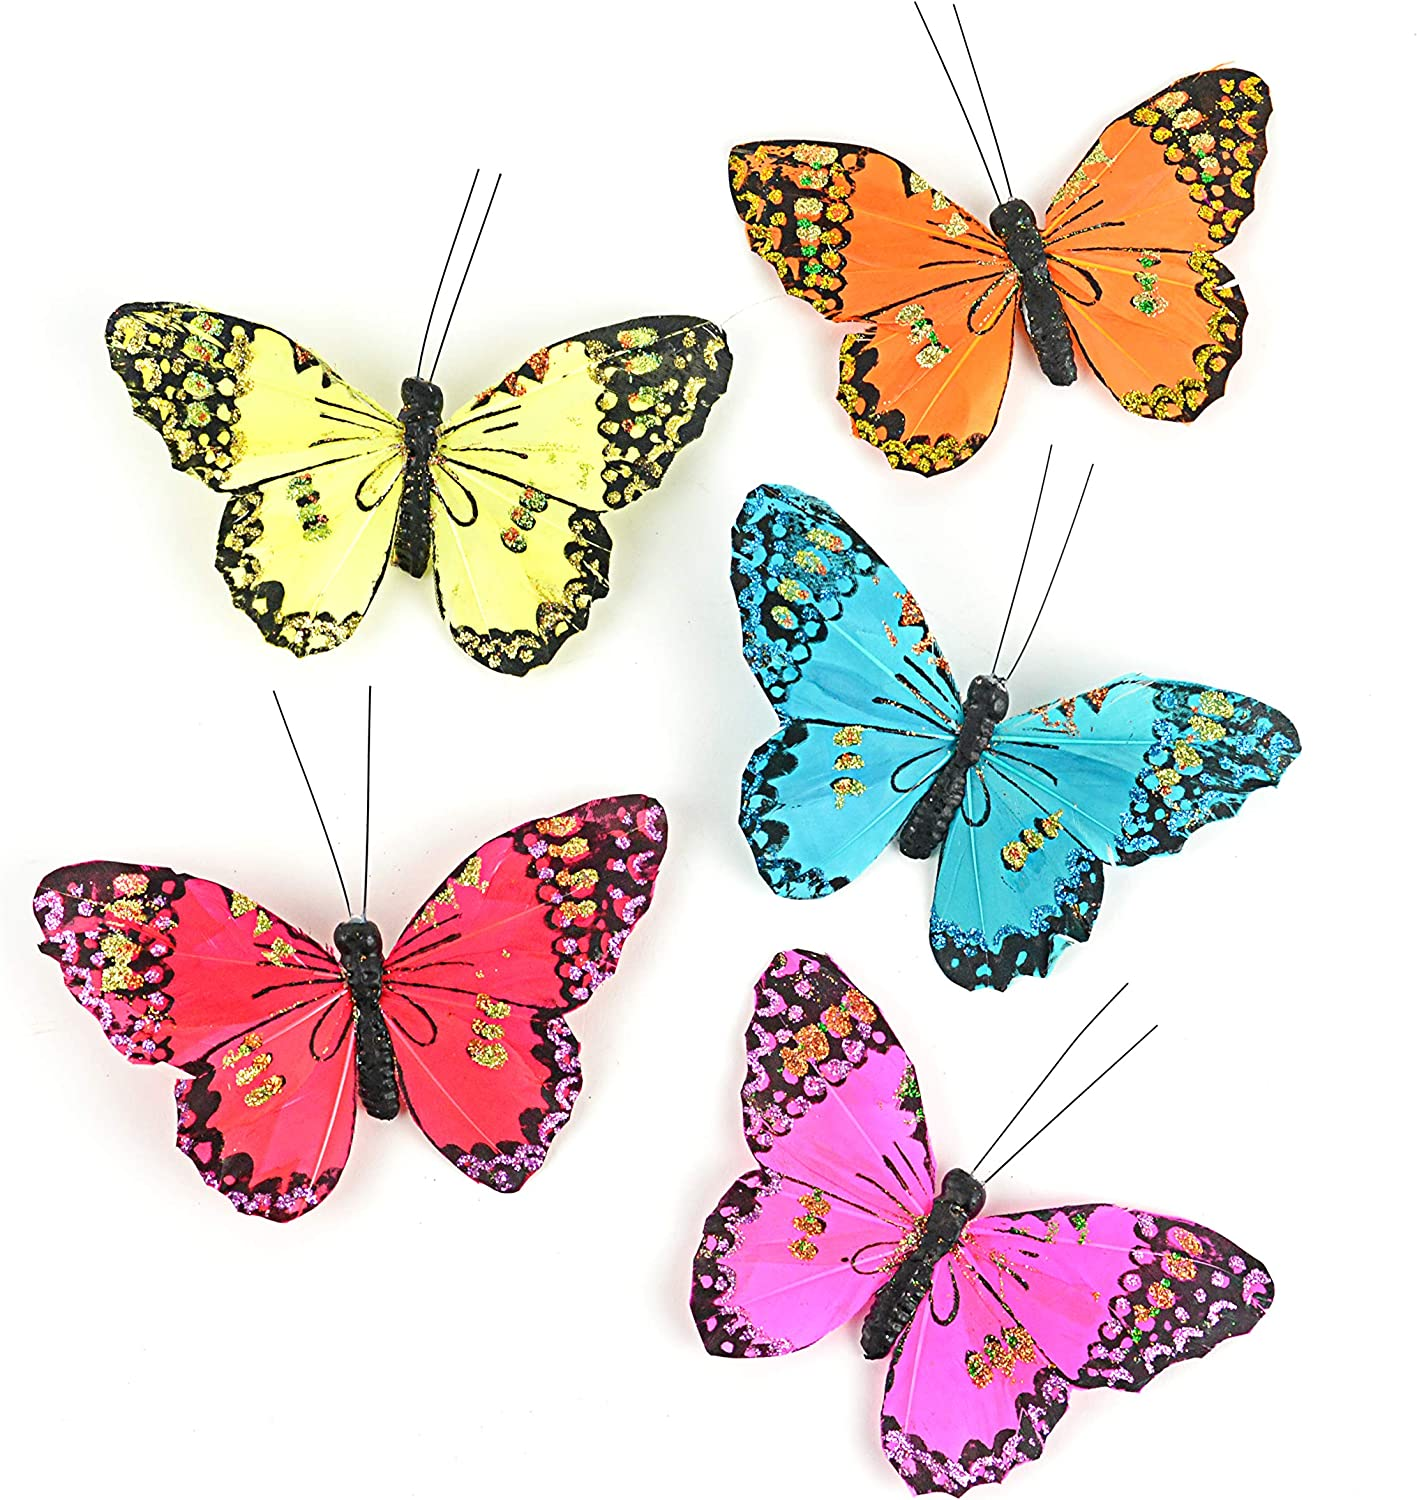 Touch of Nature 15 Piece Assorted Monarch Butterflies on a Clip - Arranging Supplies - Floral Decor - Spring Decor - Wreath Accents - Feather Butterfly - Craft Projects (20429)